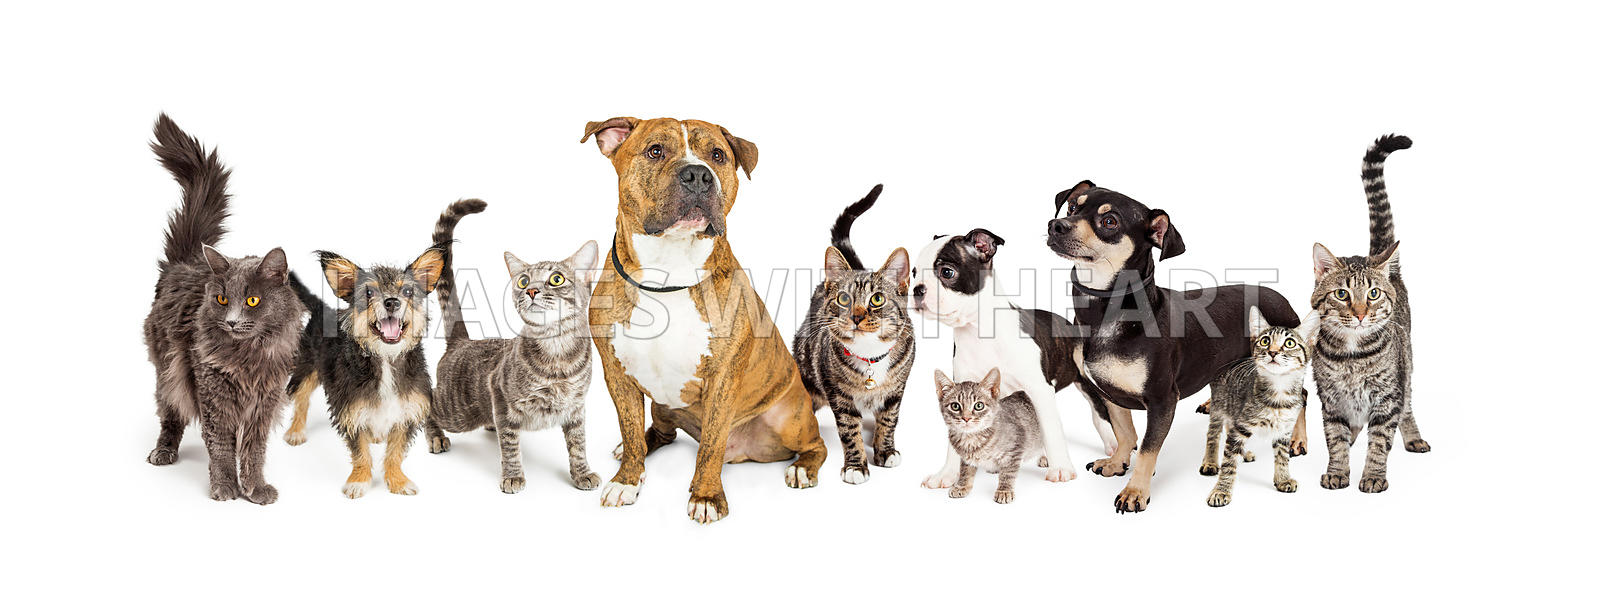 DOGS + CATS photos